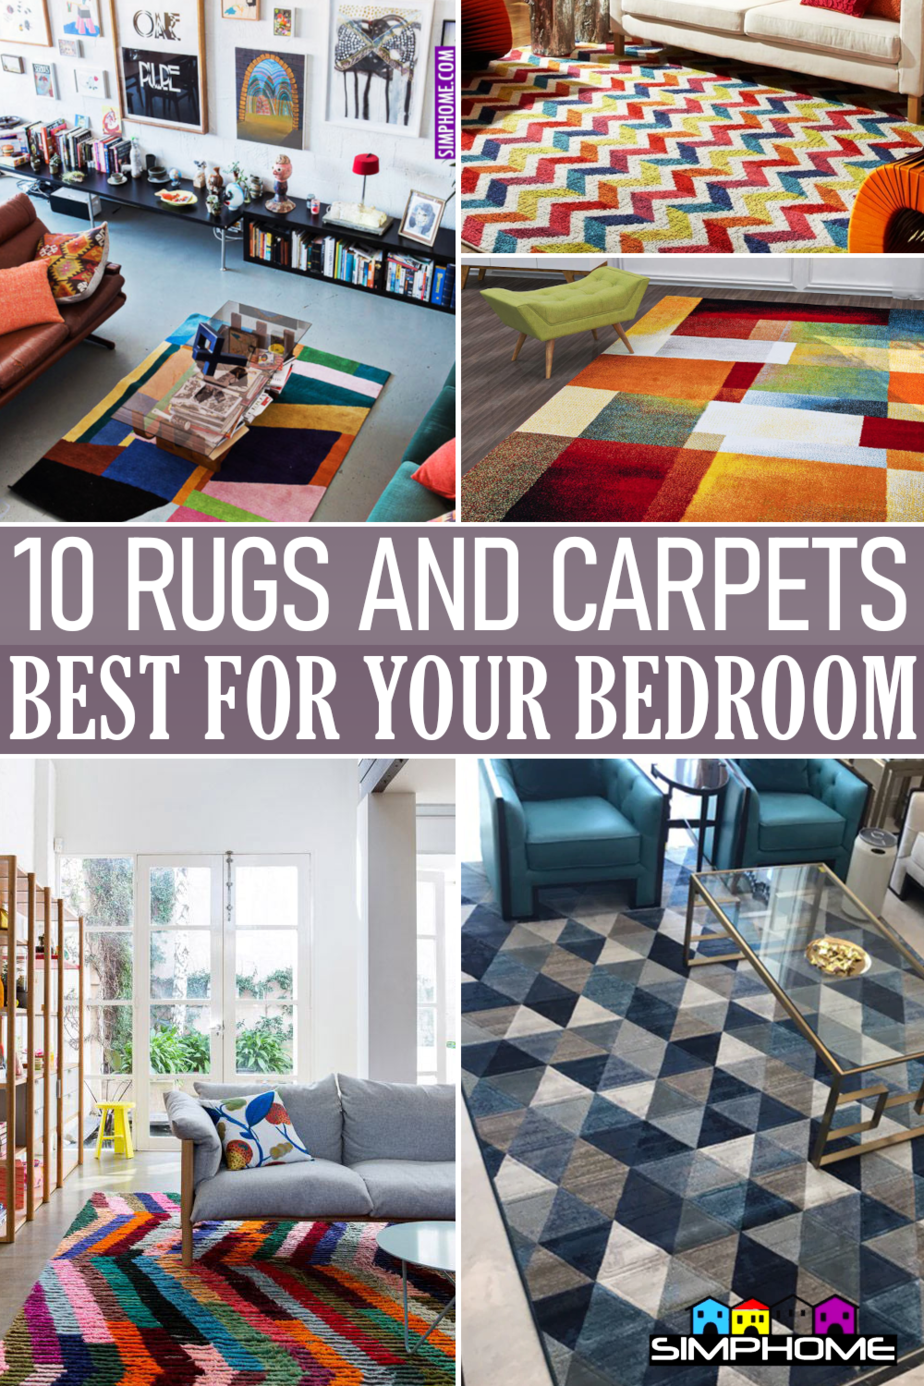 How to Choose best rugs and carpet via Simphome.comFeatured